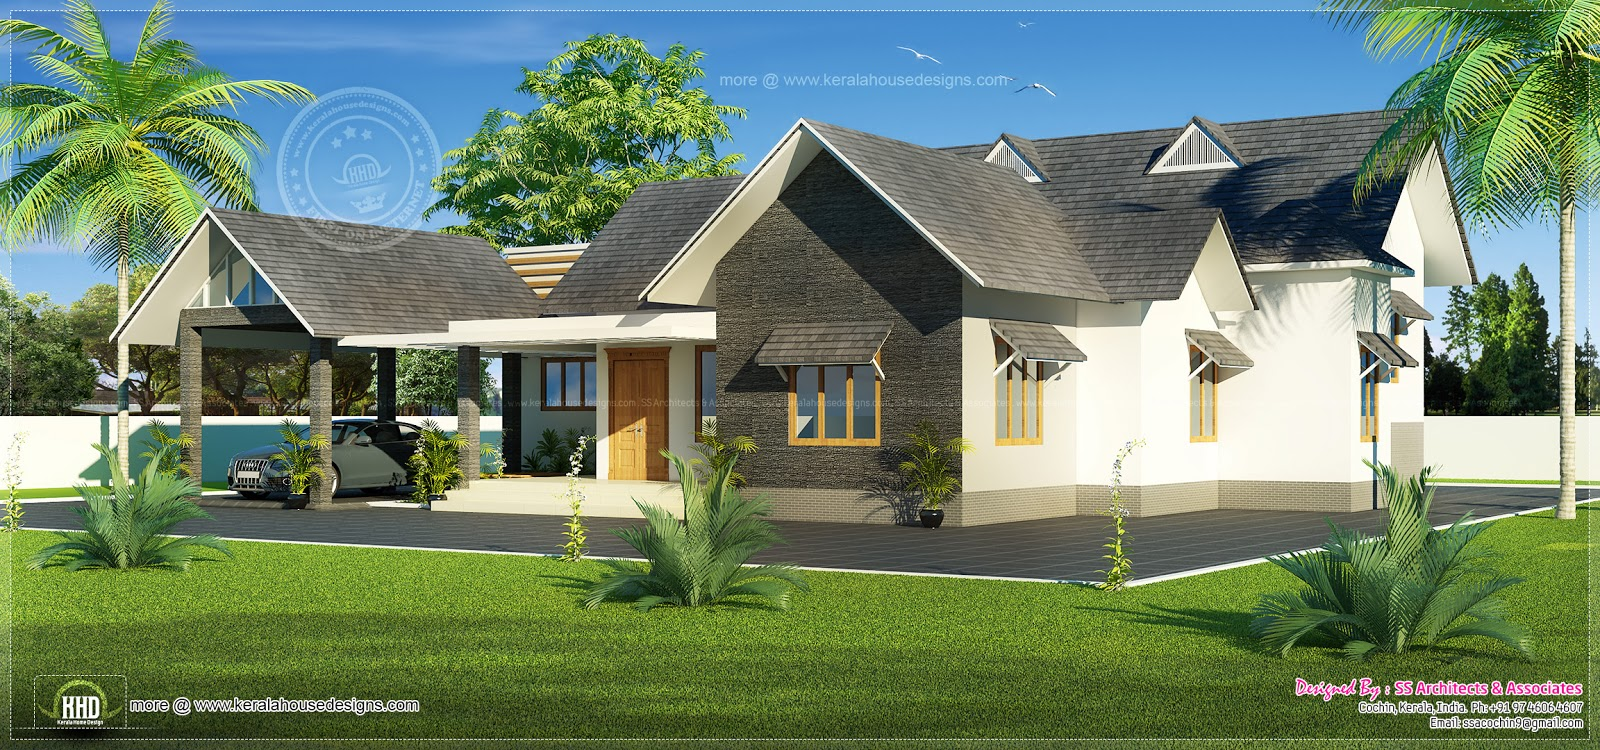 House plans and design architectural designs bungalow houses for Model house bungalow type